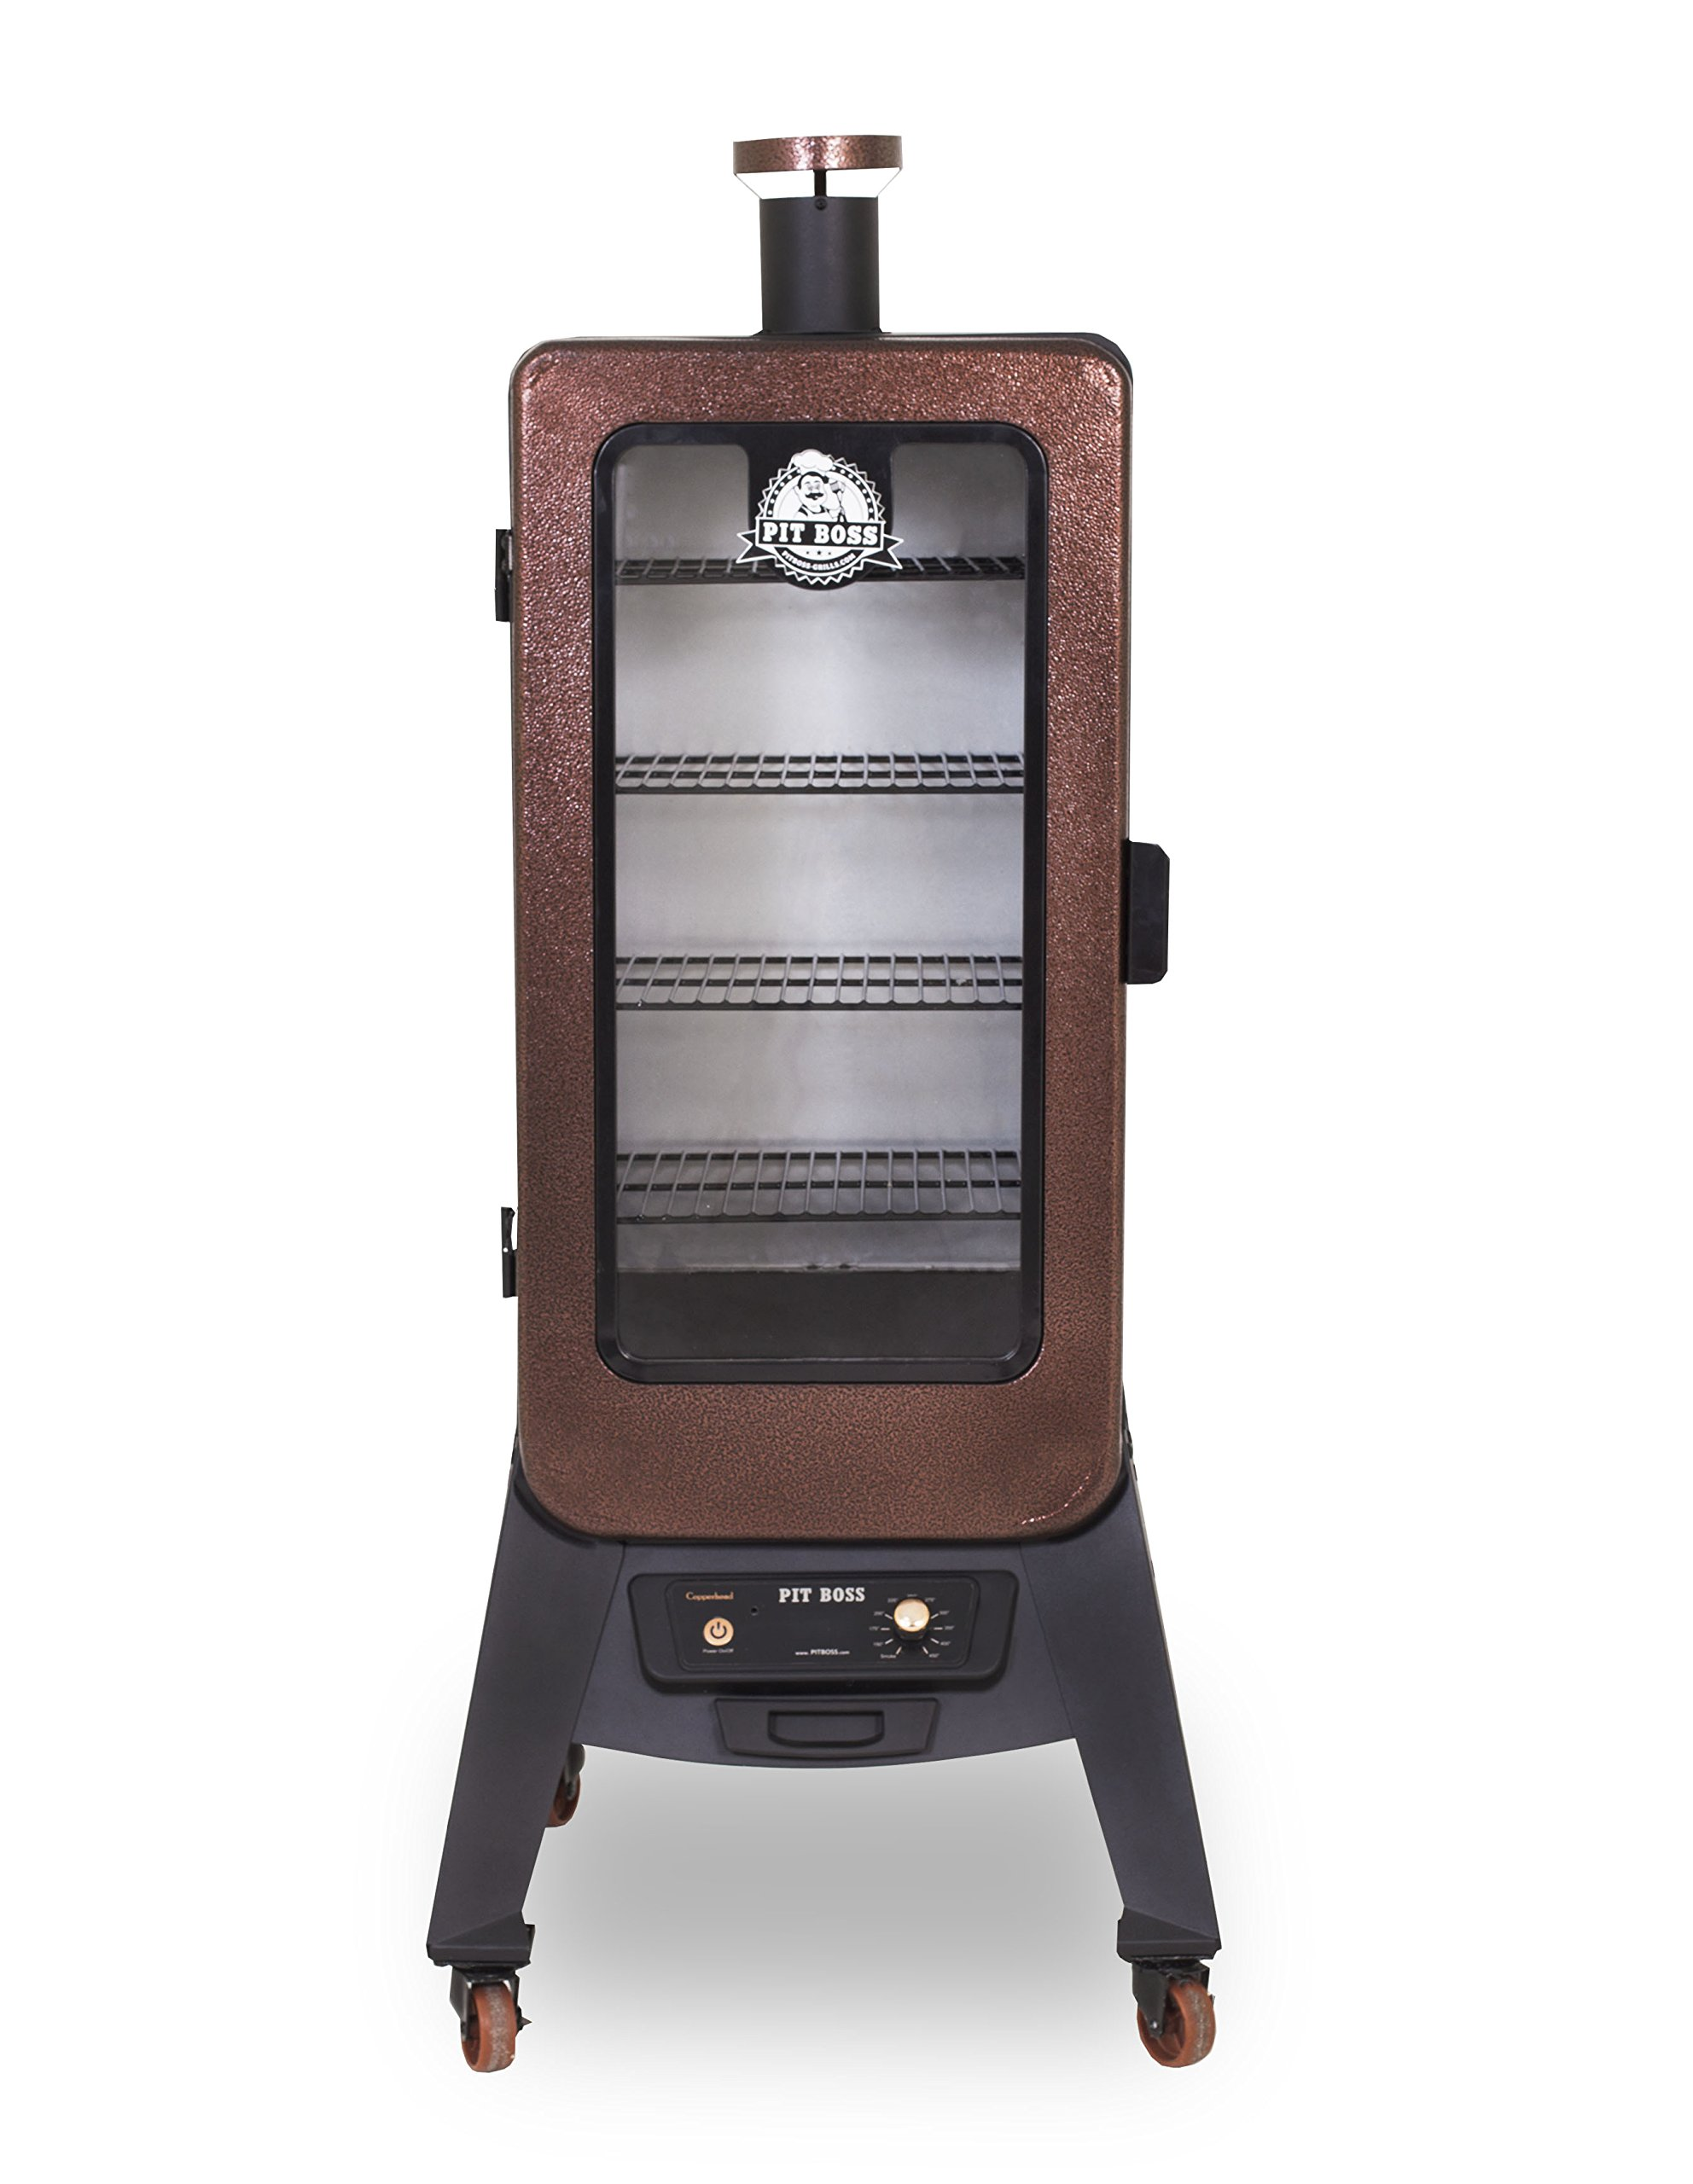 Pit Boss Grills 77350 3.5 Cu. ft. Vertical Digital Pellet Smoker with Rear Hopper